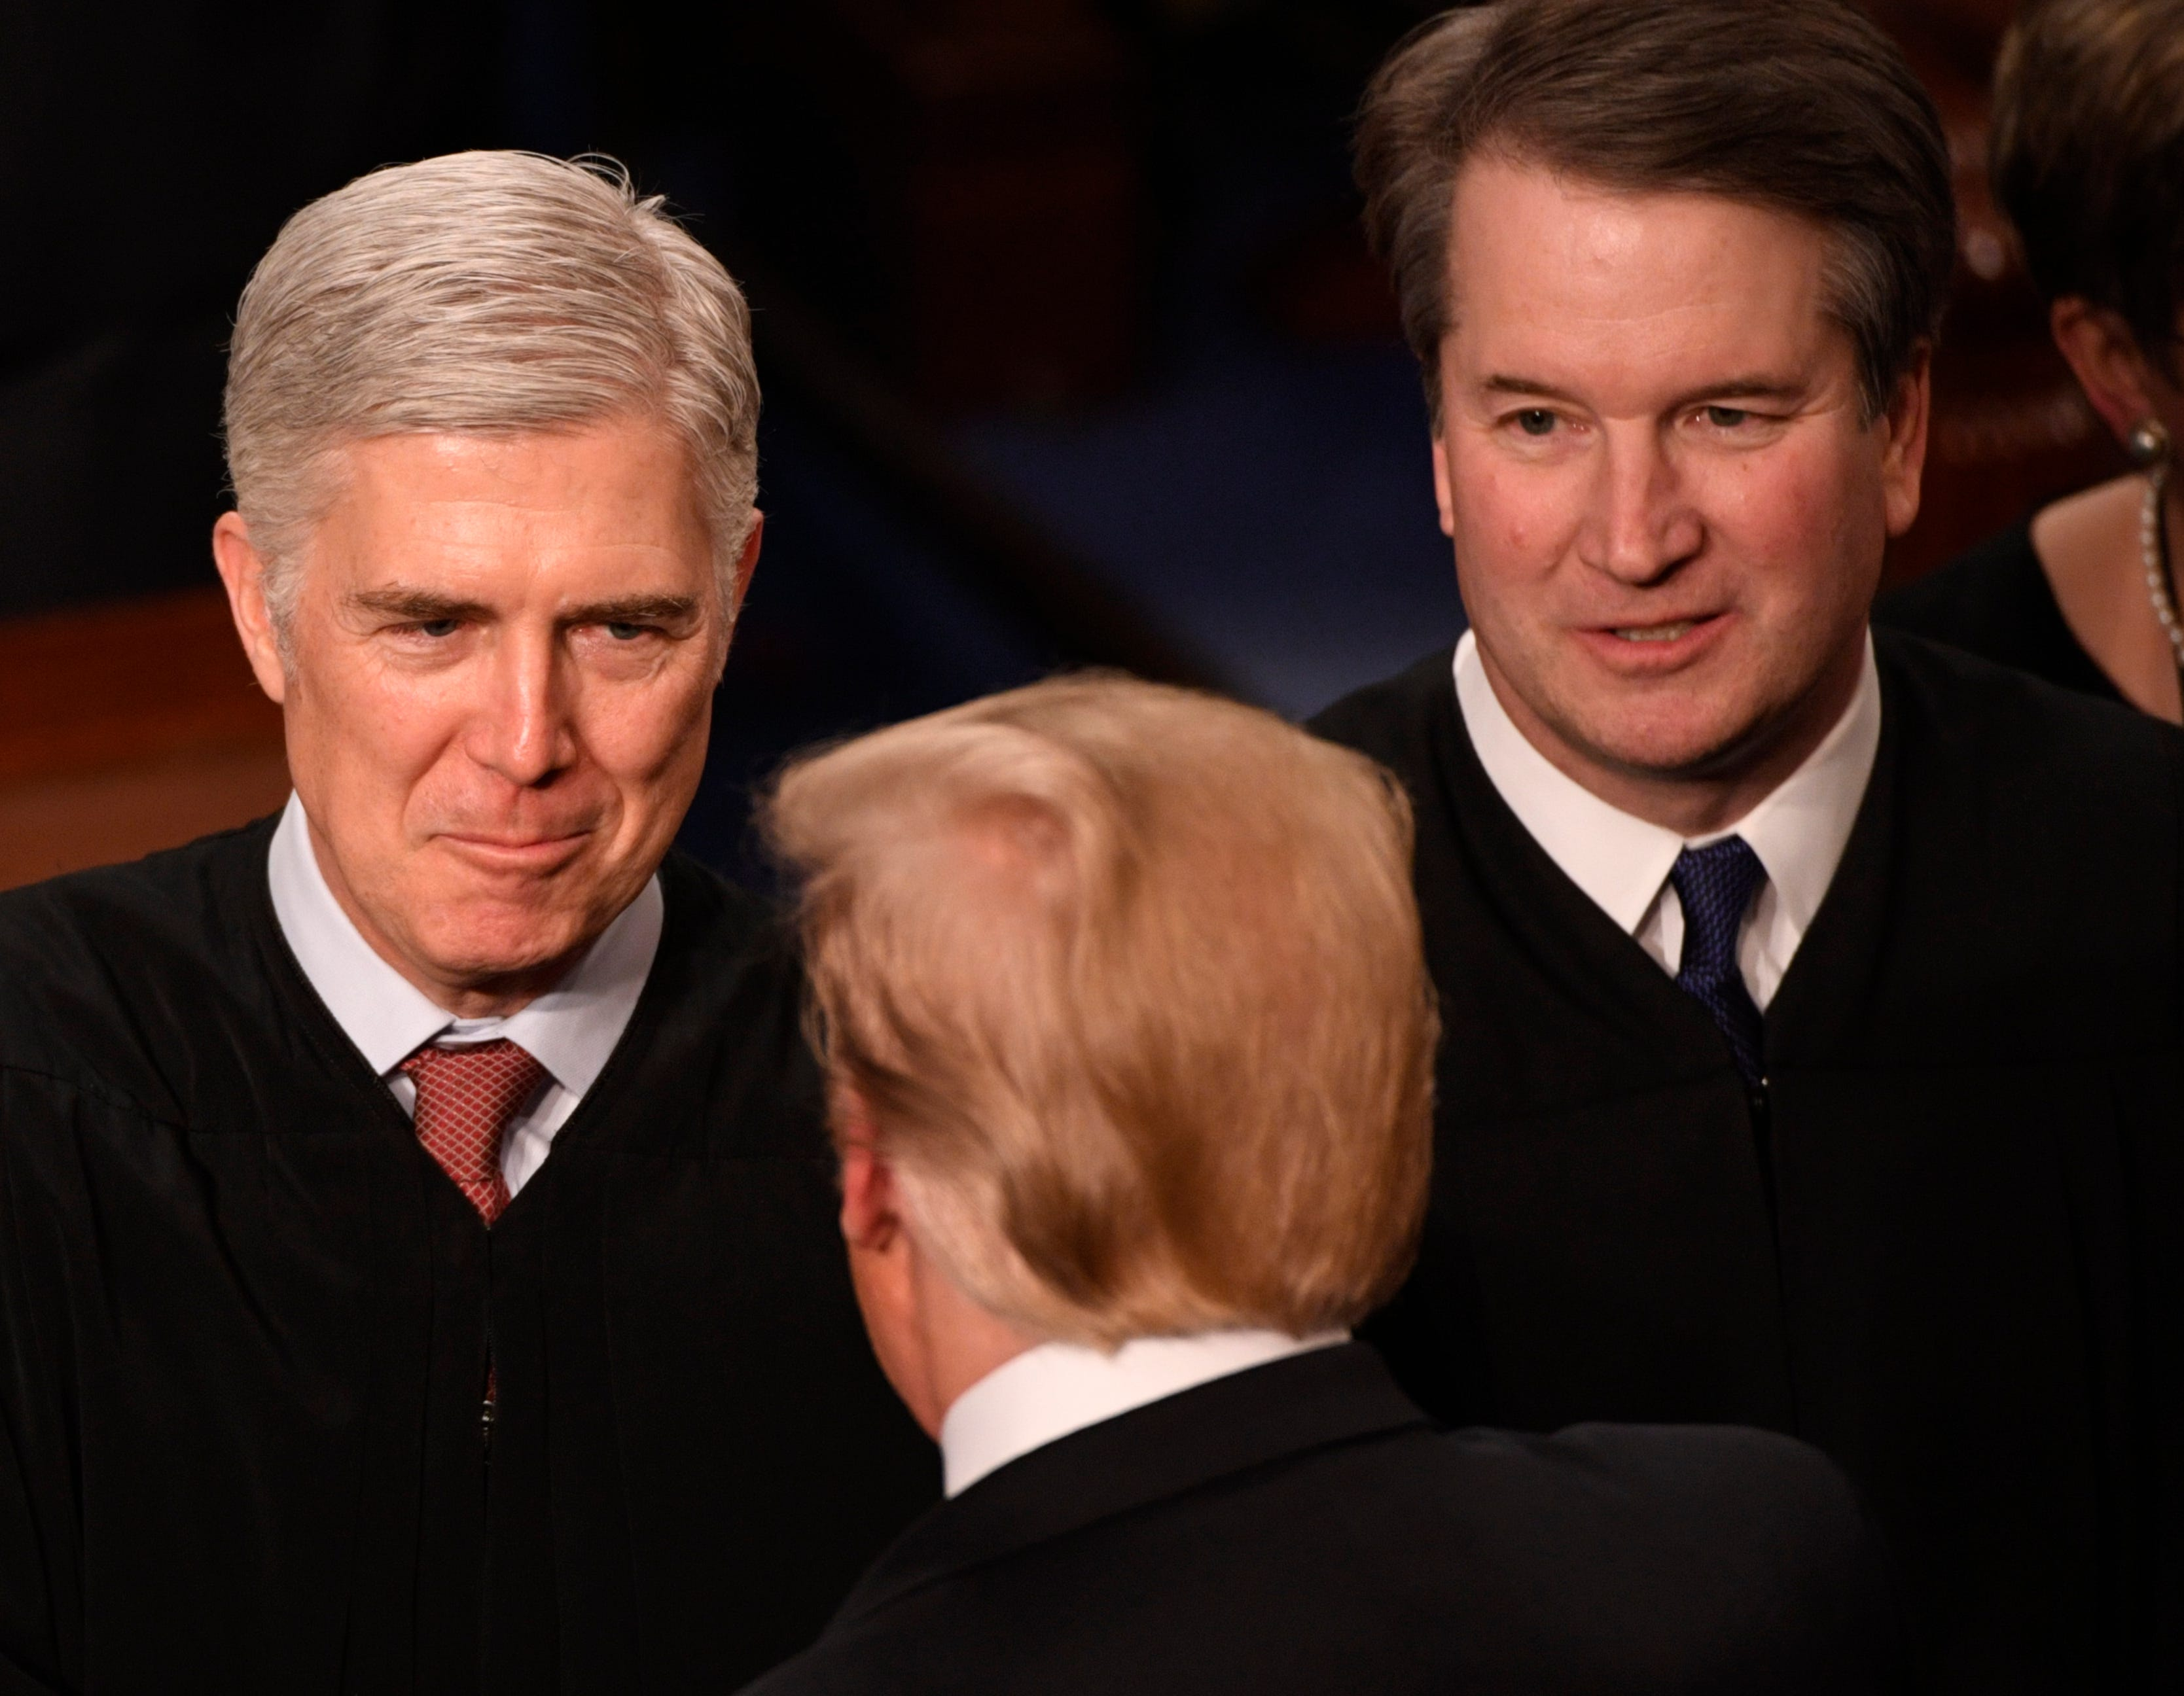 Justices Neil Gorsuch and Brett Kavanaugh greets President Donald Trump before he delivers the State of the Union address.